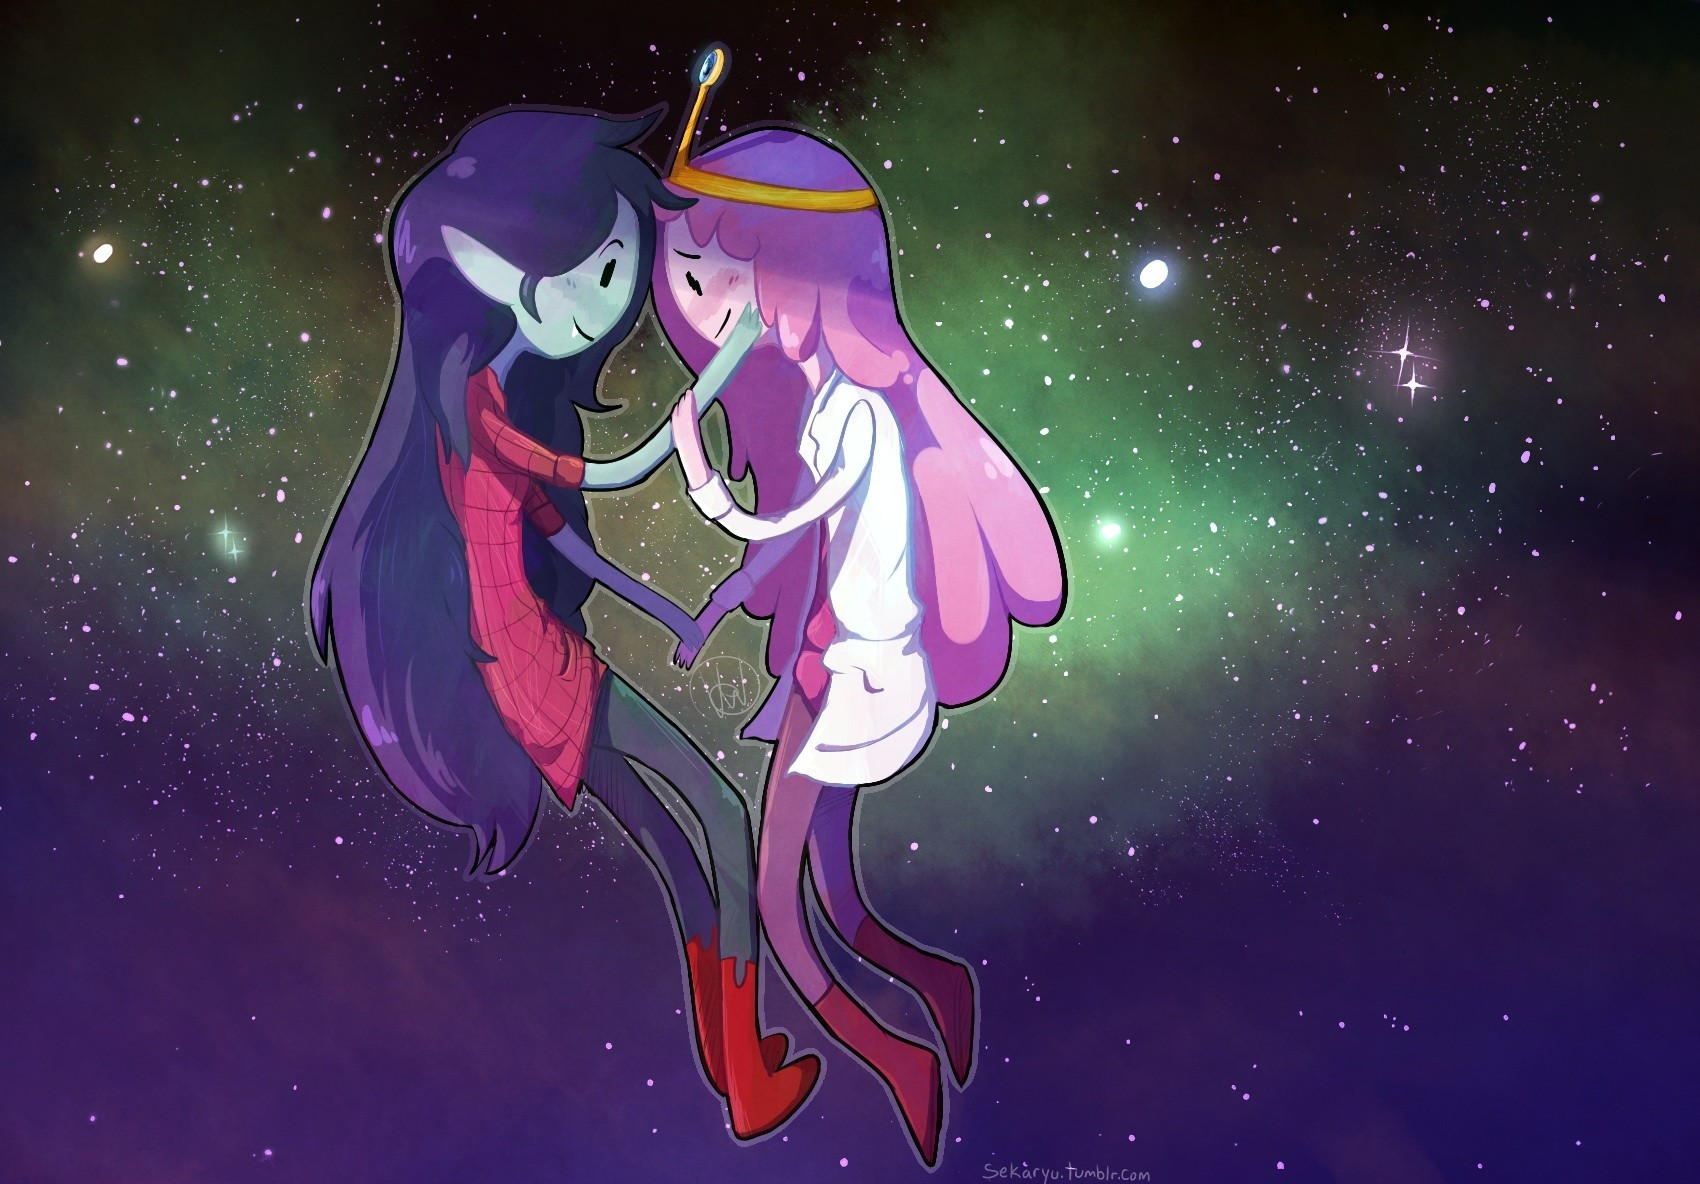 Marceline connects